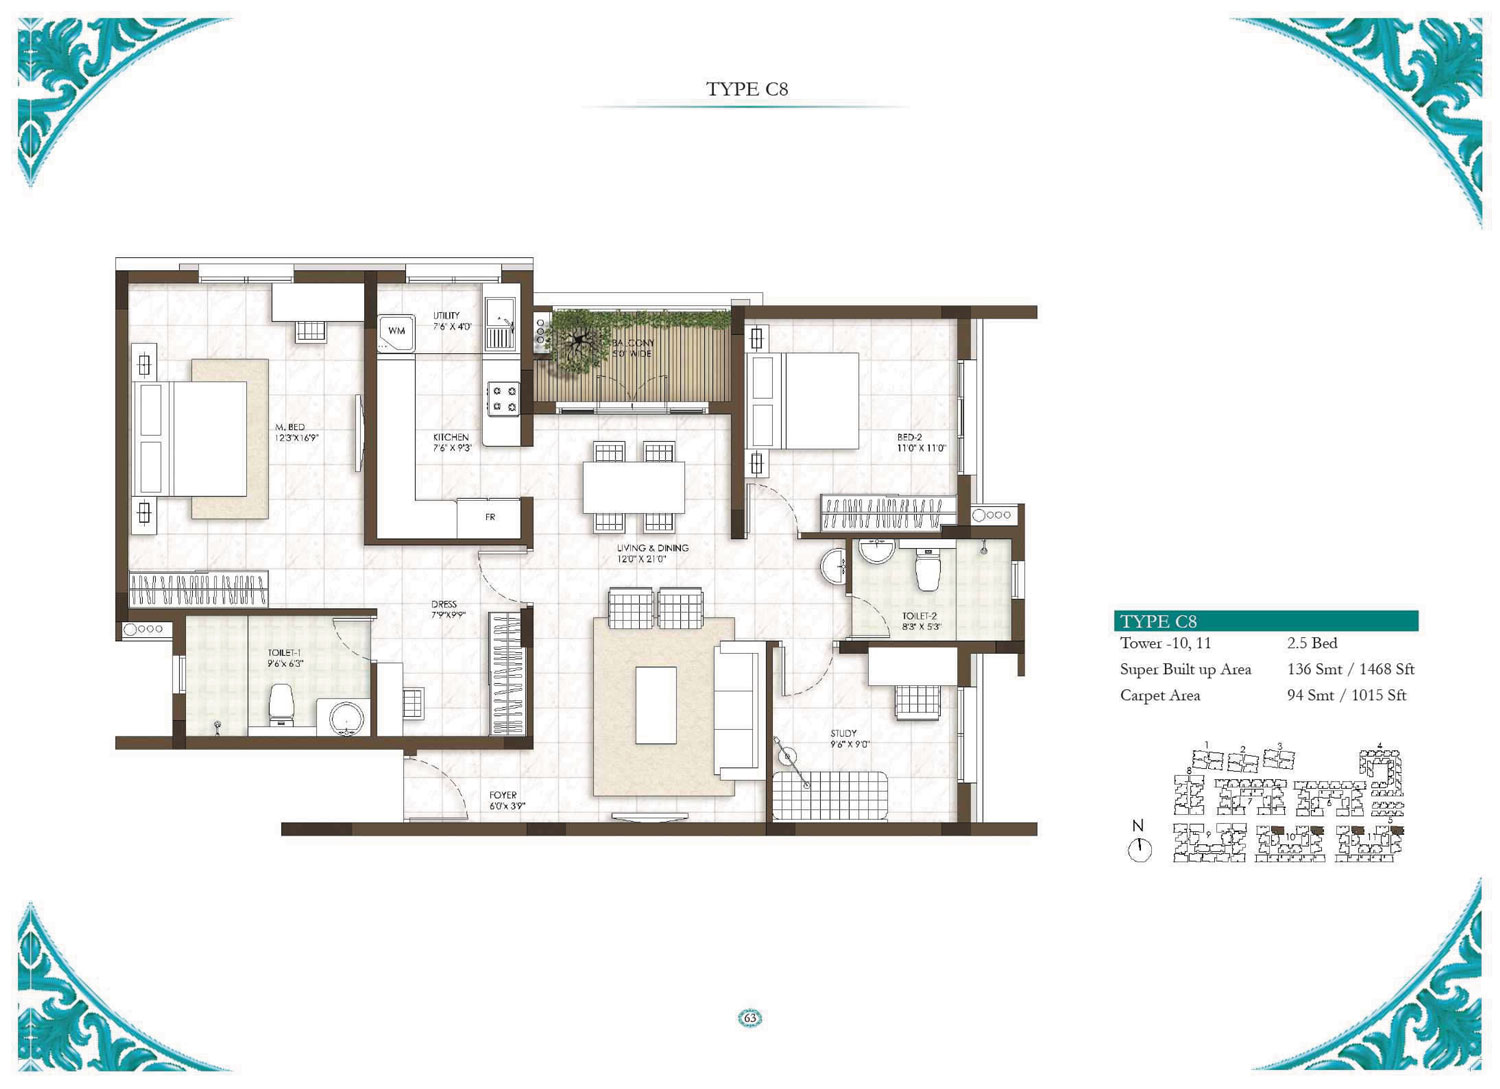 Type C8- 2.5 Bed - 1468 Sq Ft